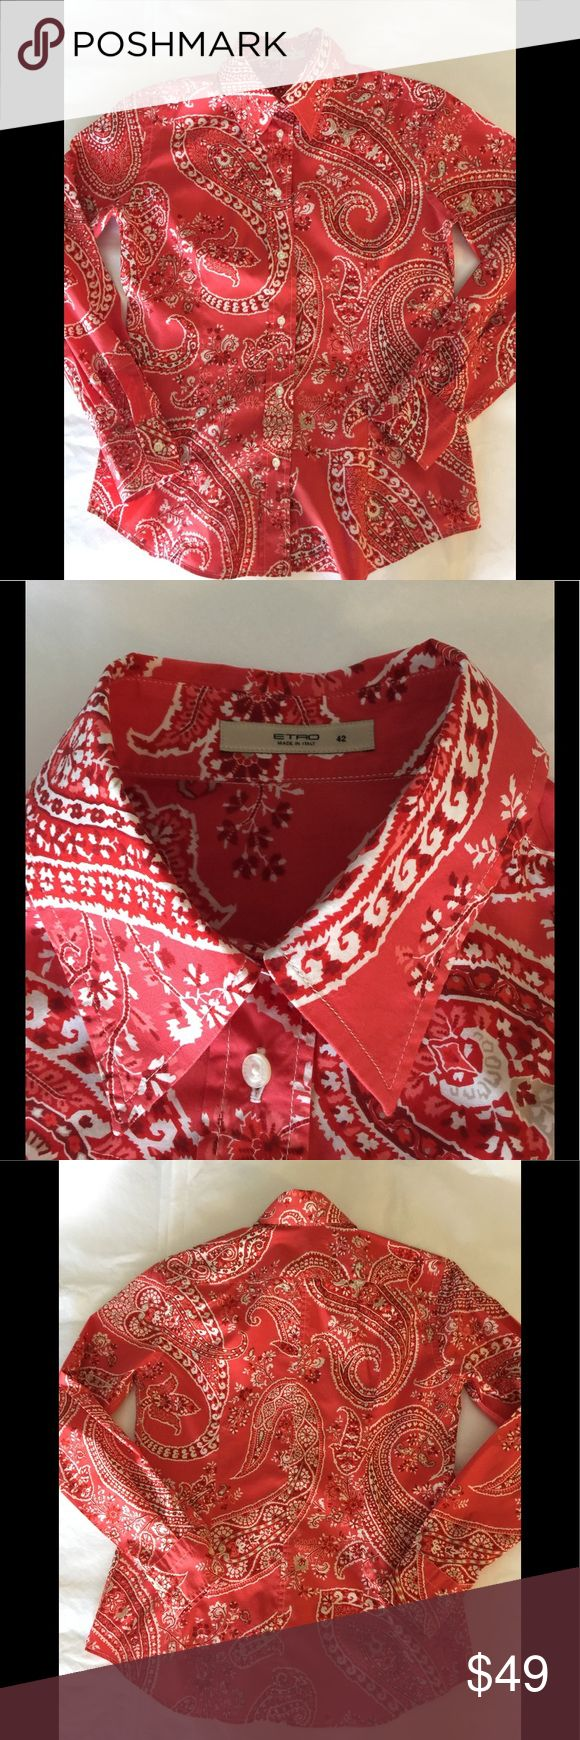 ETRO Italy lady's button down shirts size 42 Paisley button down shirts size 42 Like brand new  Very good condition Etro Tops Button Down Shirts